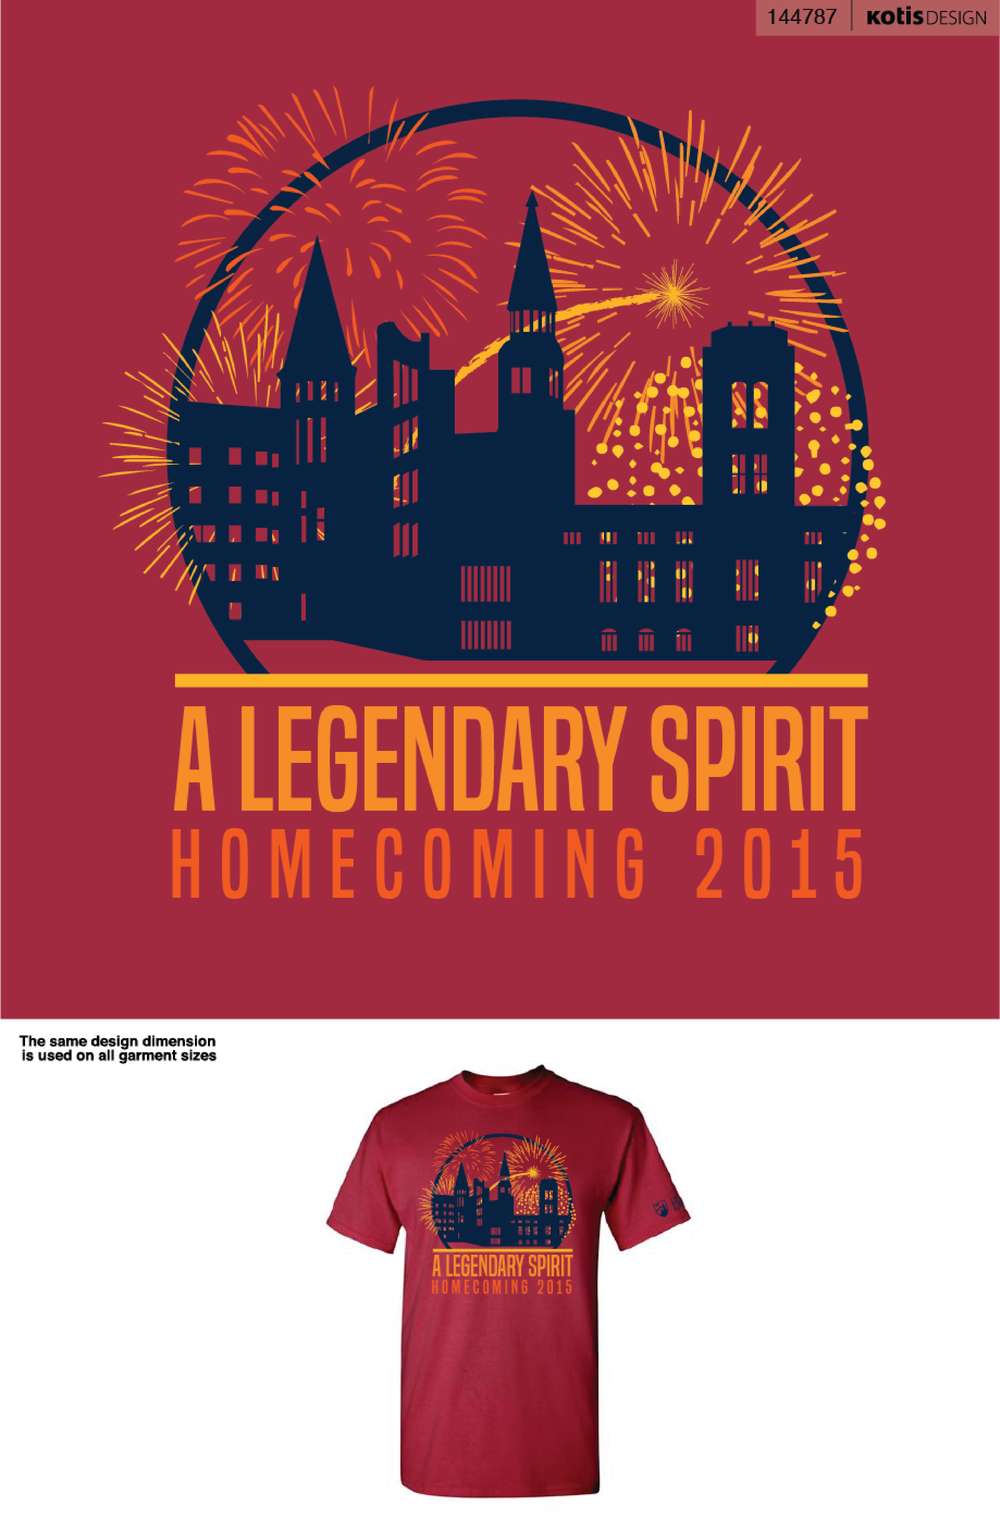 University of Denver Homecoming